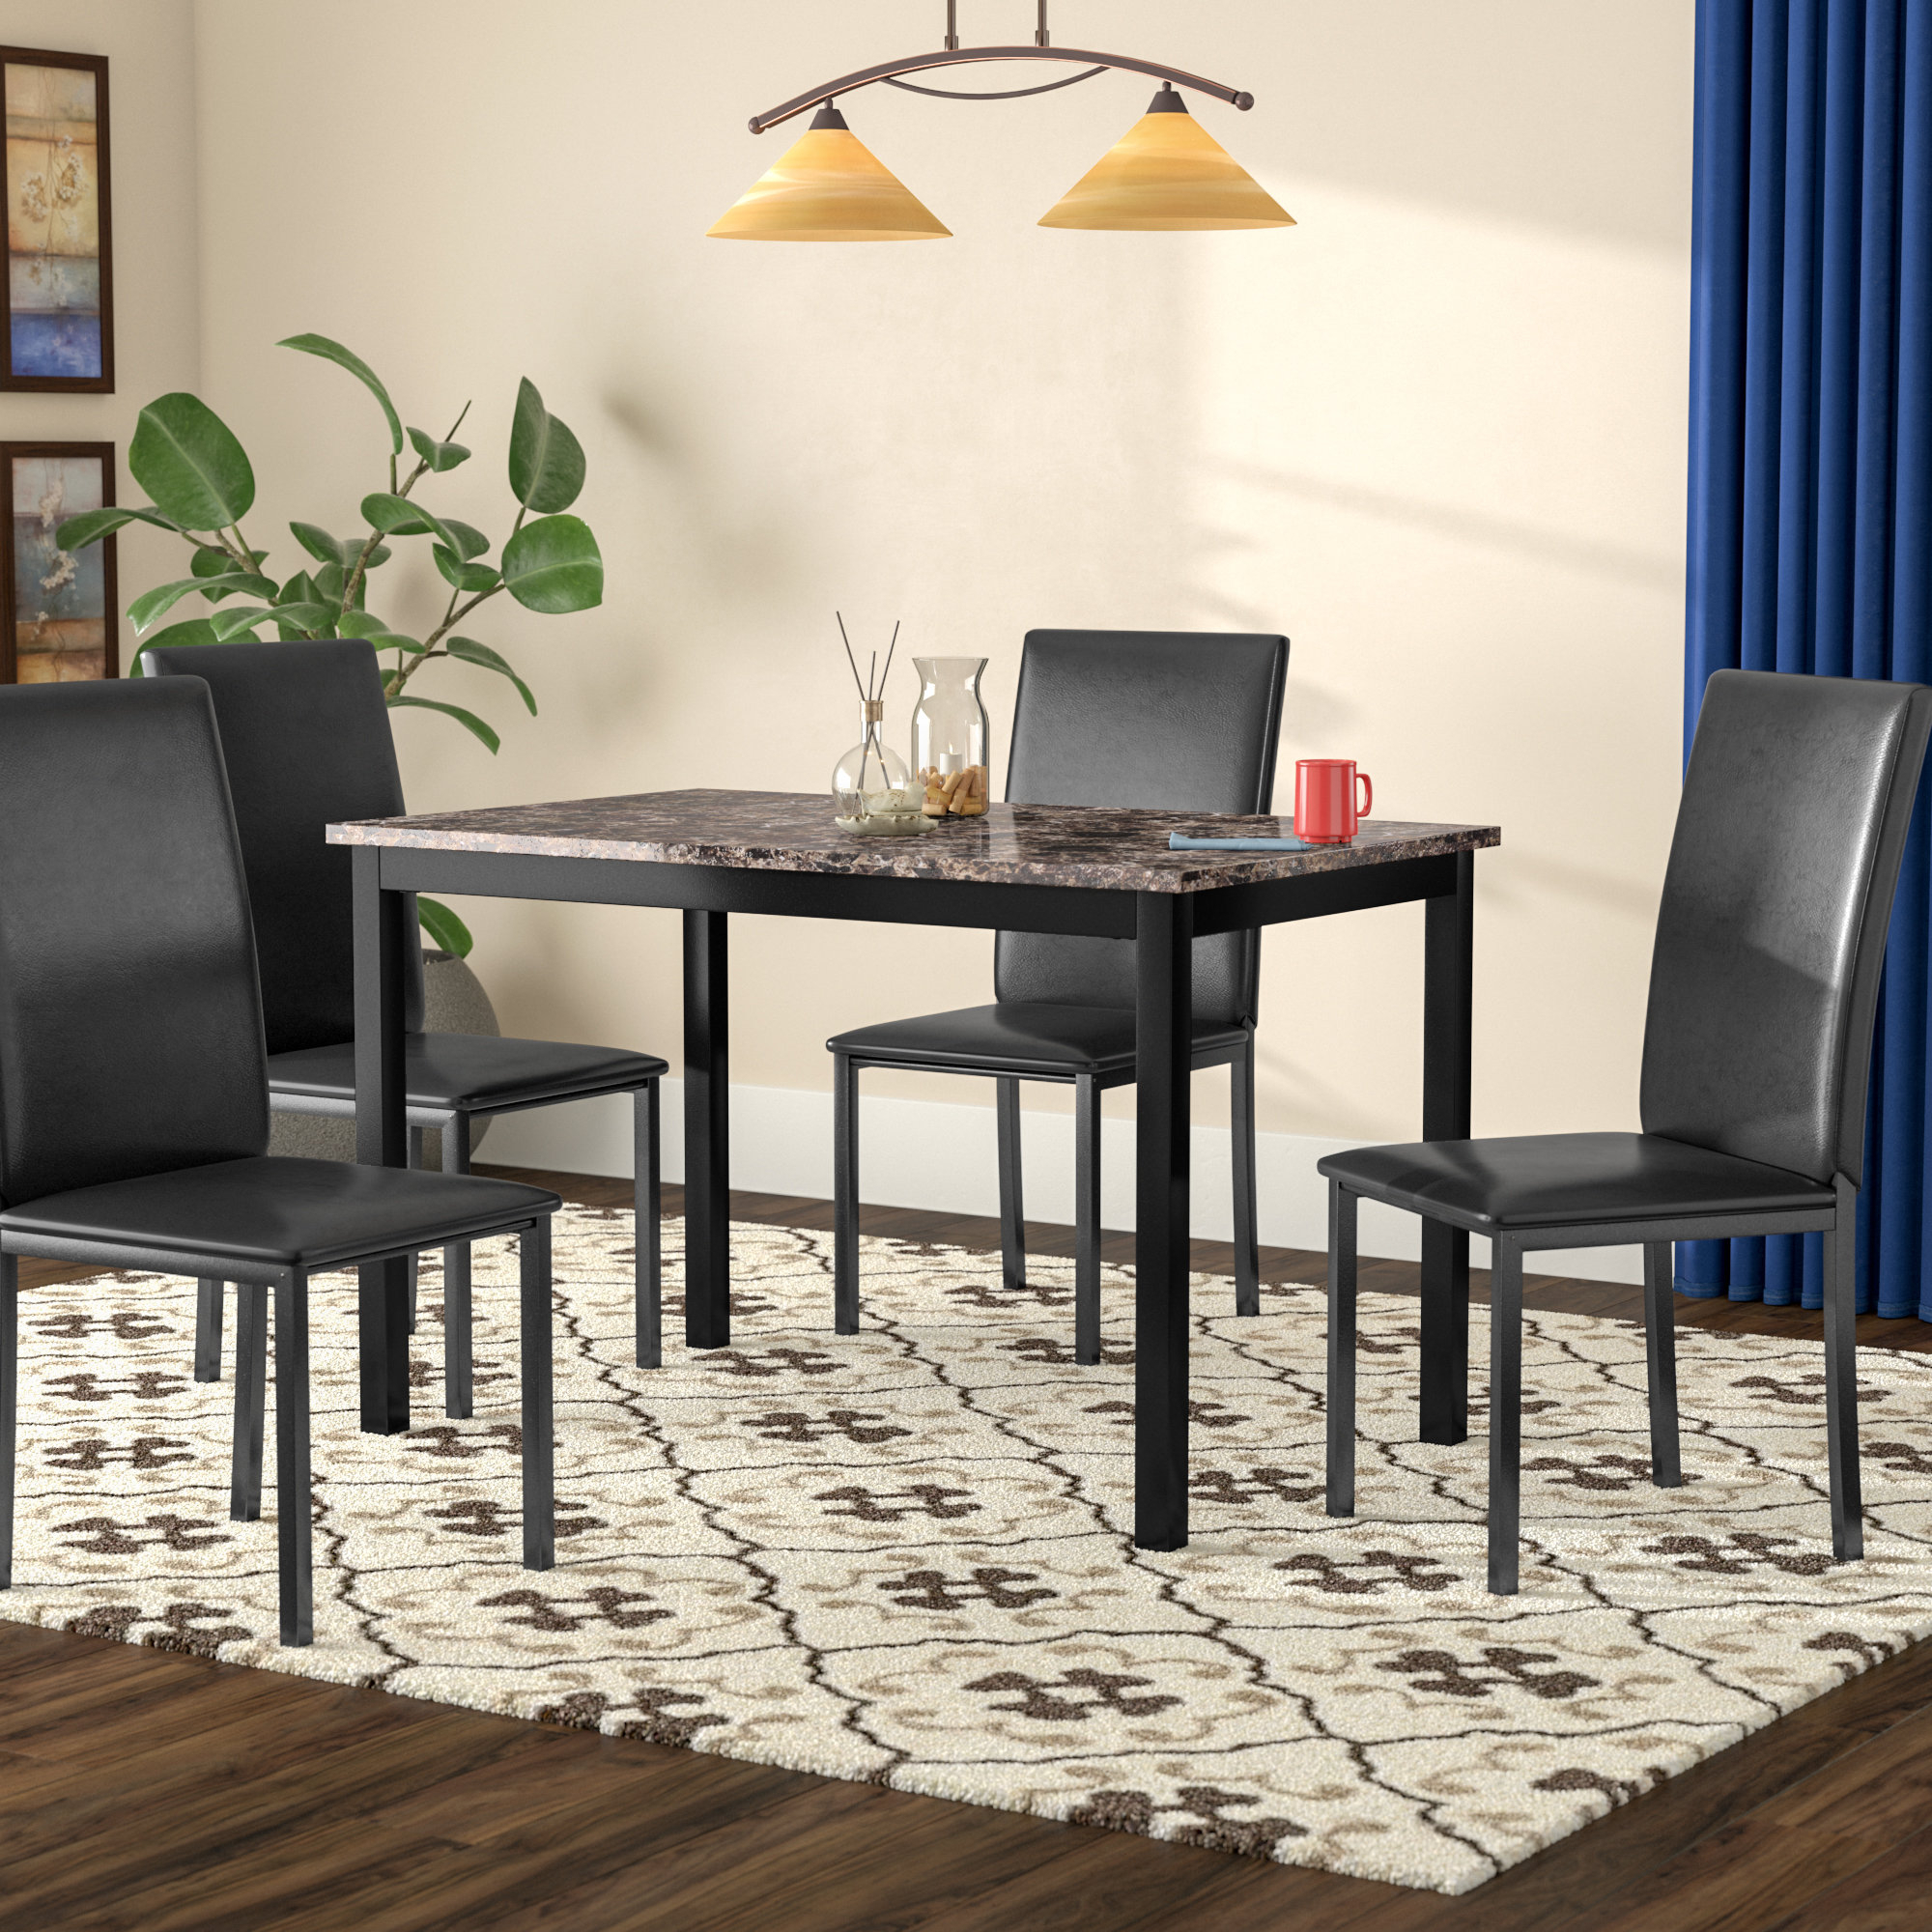 Rarick 5 Piece Solid Wood Dining Sets (Set Of 5) Intended For Popular Dining Room Sets For 12 (Gallery 11 of 20)